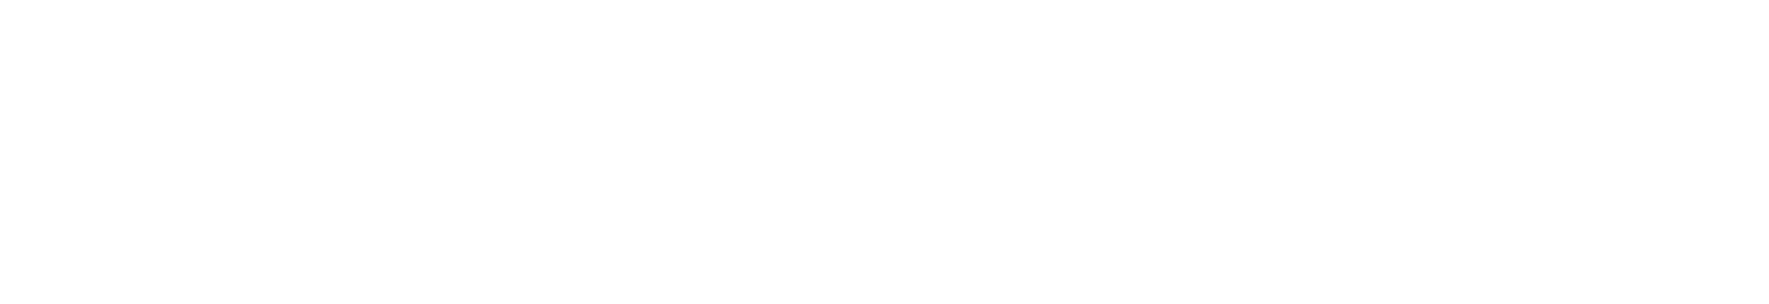 http://wordpress.fuelfortruth.org/wp-content/uploads/2020/08/Powereed-by-Jewish-National-Fund_white.png